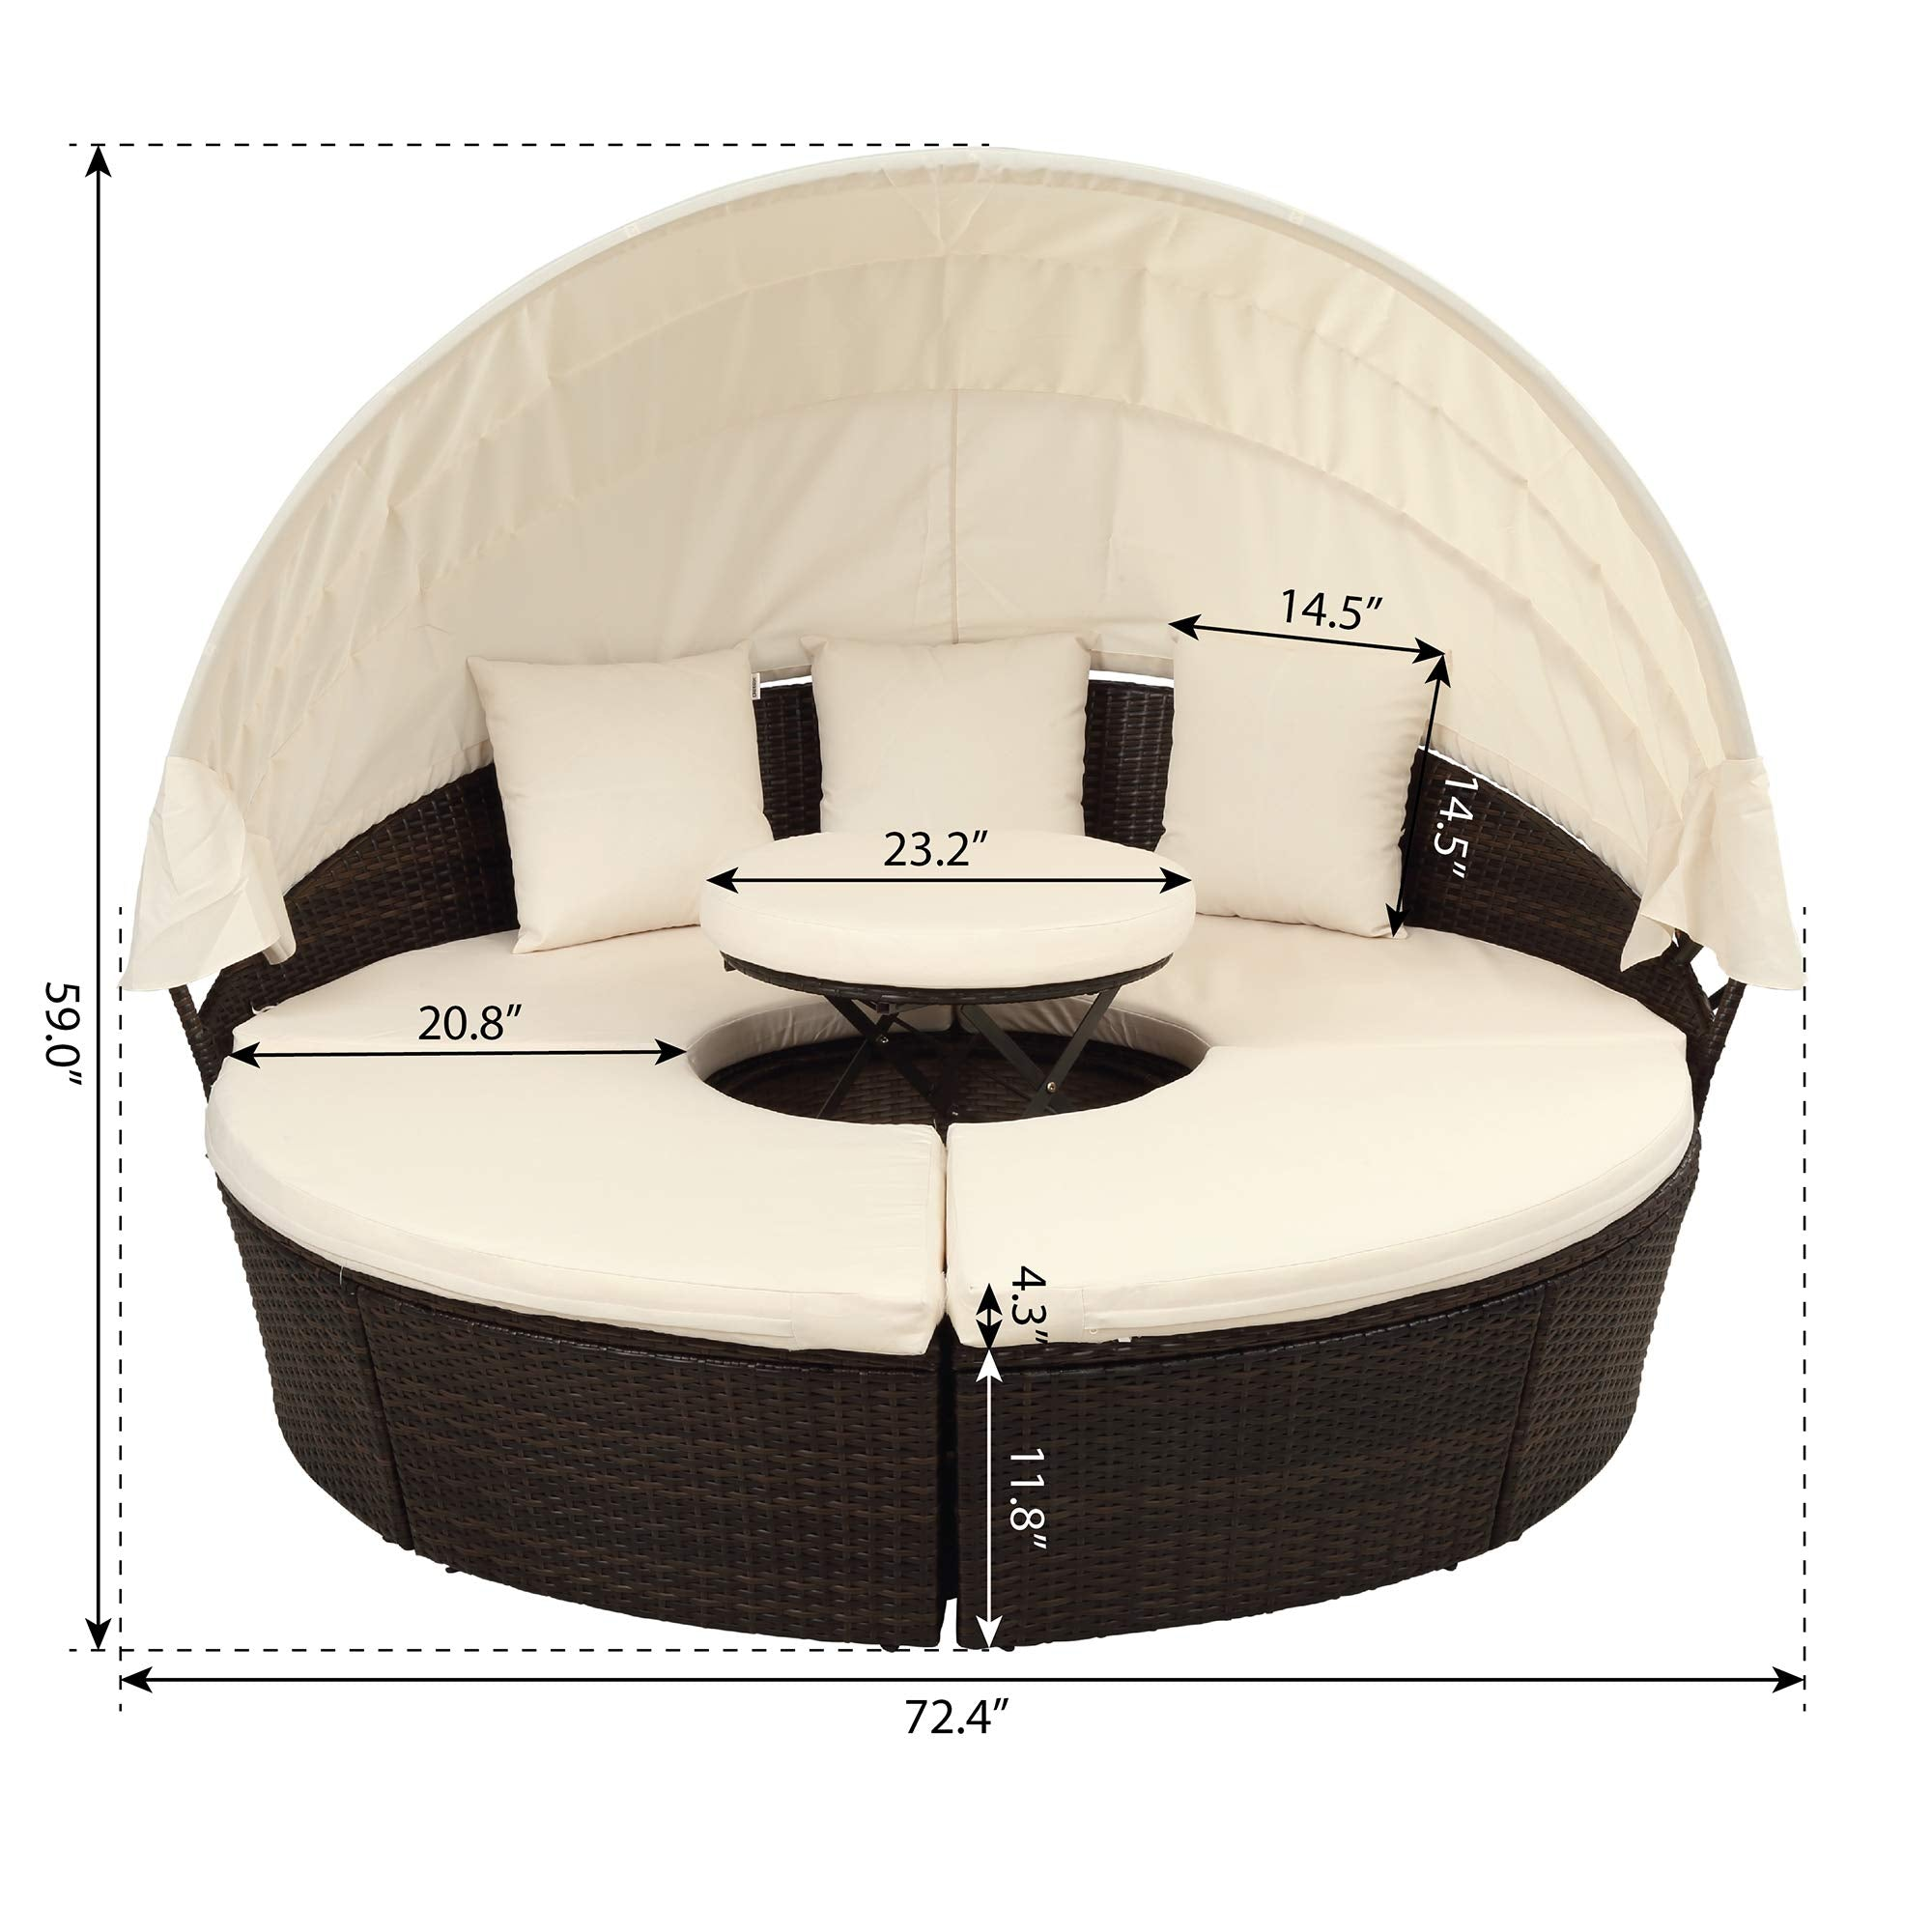 LZ LEISURE ZONE Outdoor Patio Furniture Sets, All-Weather ...